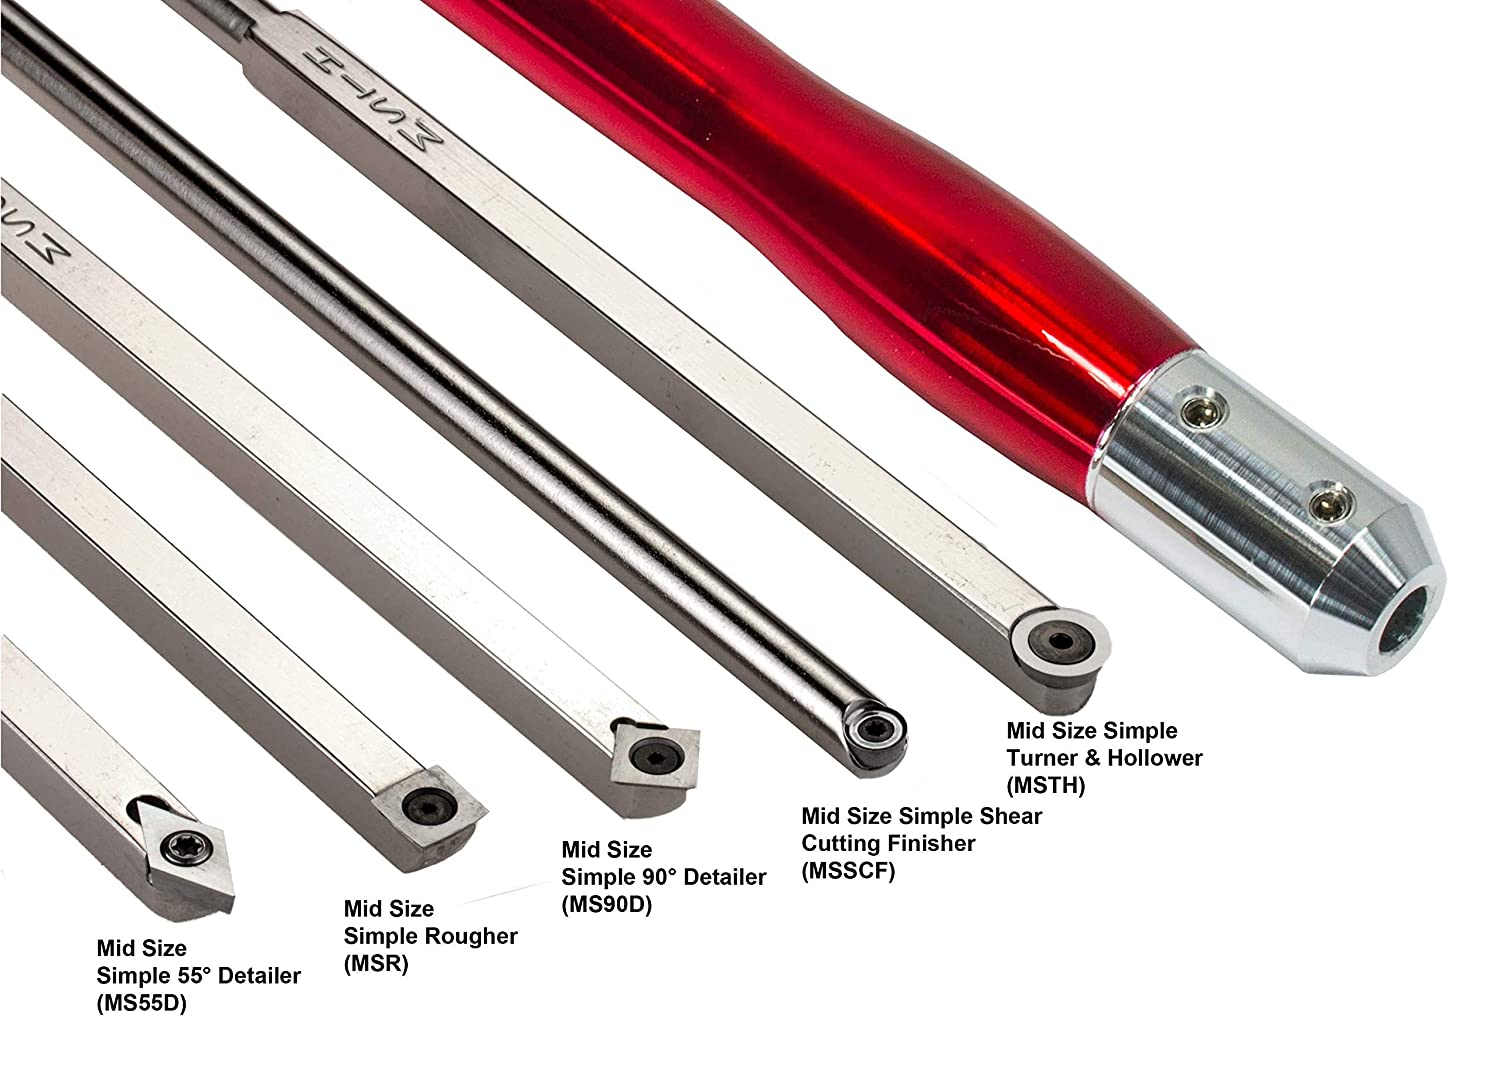 USA Made Brilliant Red Handle Simple Woodturning Tools Mid Size Package of 5 Carbide Turning Tools with 12 Solid Aluminum Interchangeable Handle for Wood Lathe